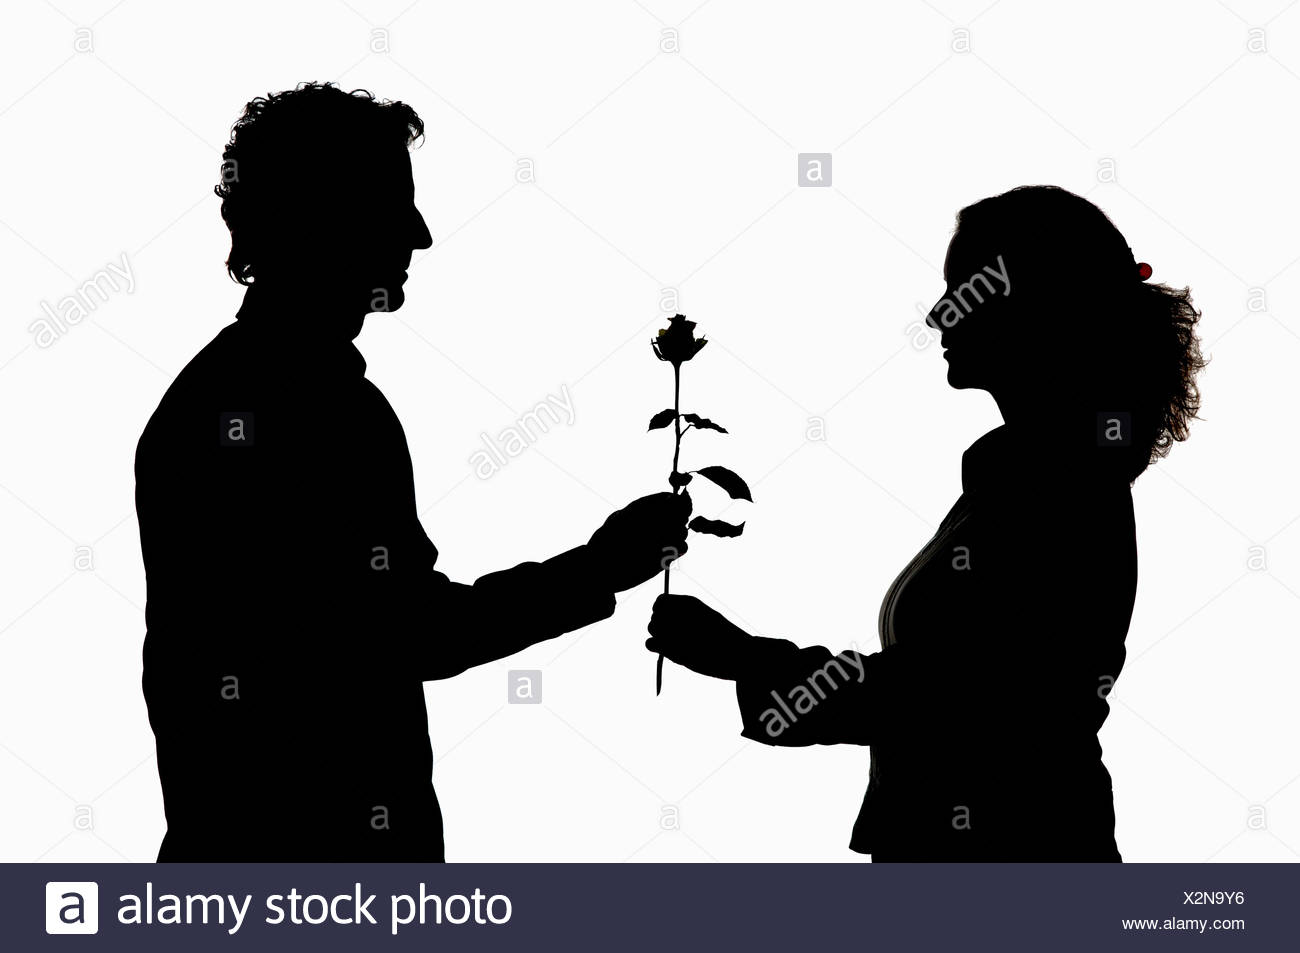 Man giving rose to woman, silhouette - Stock Image